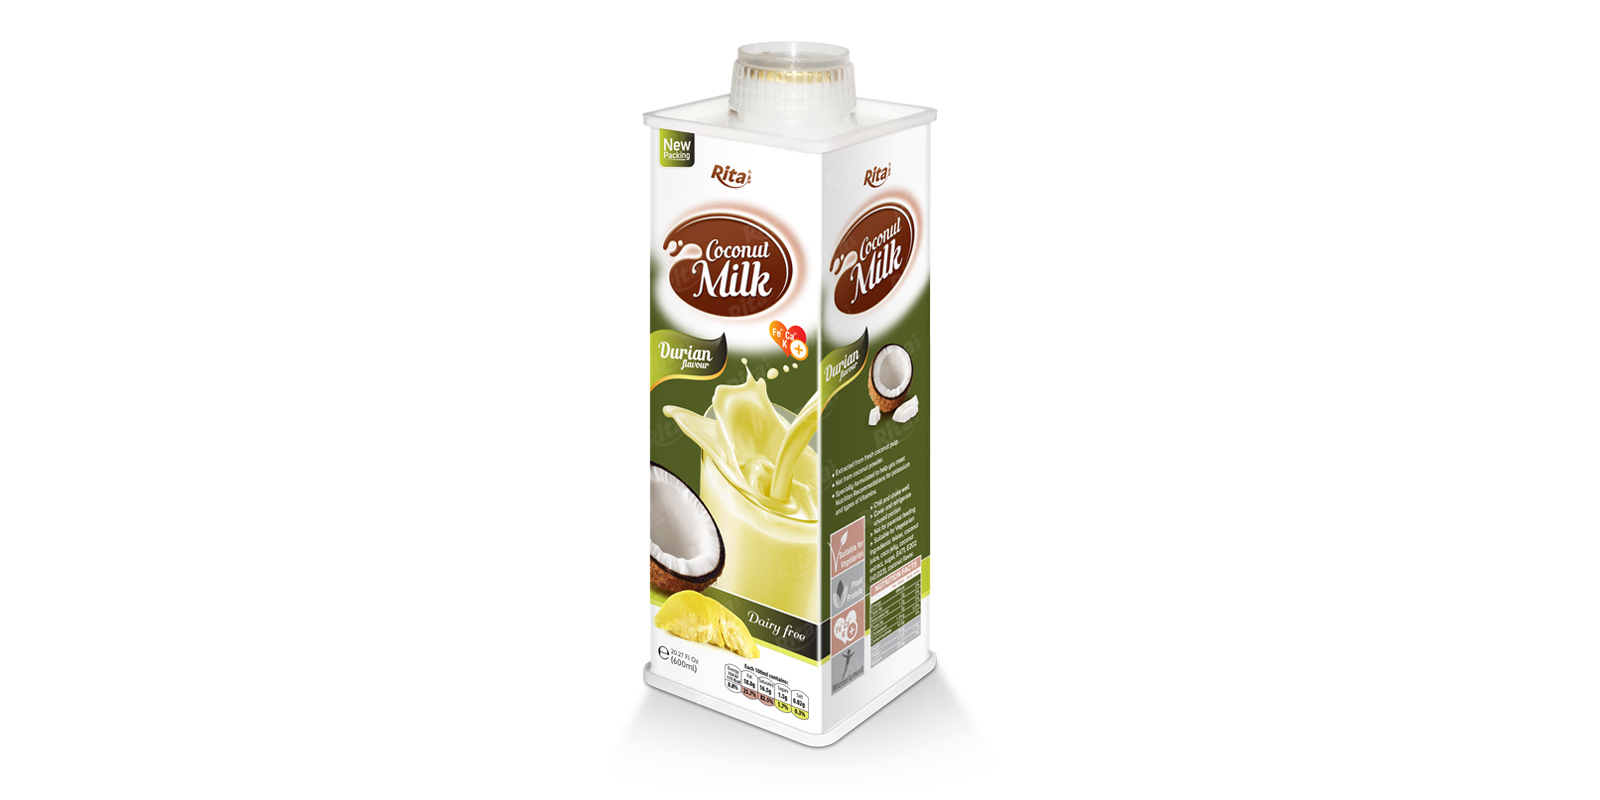 Coconut milk durian 600ml